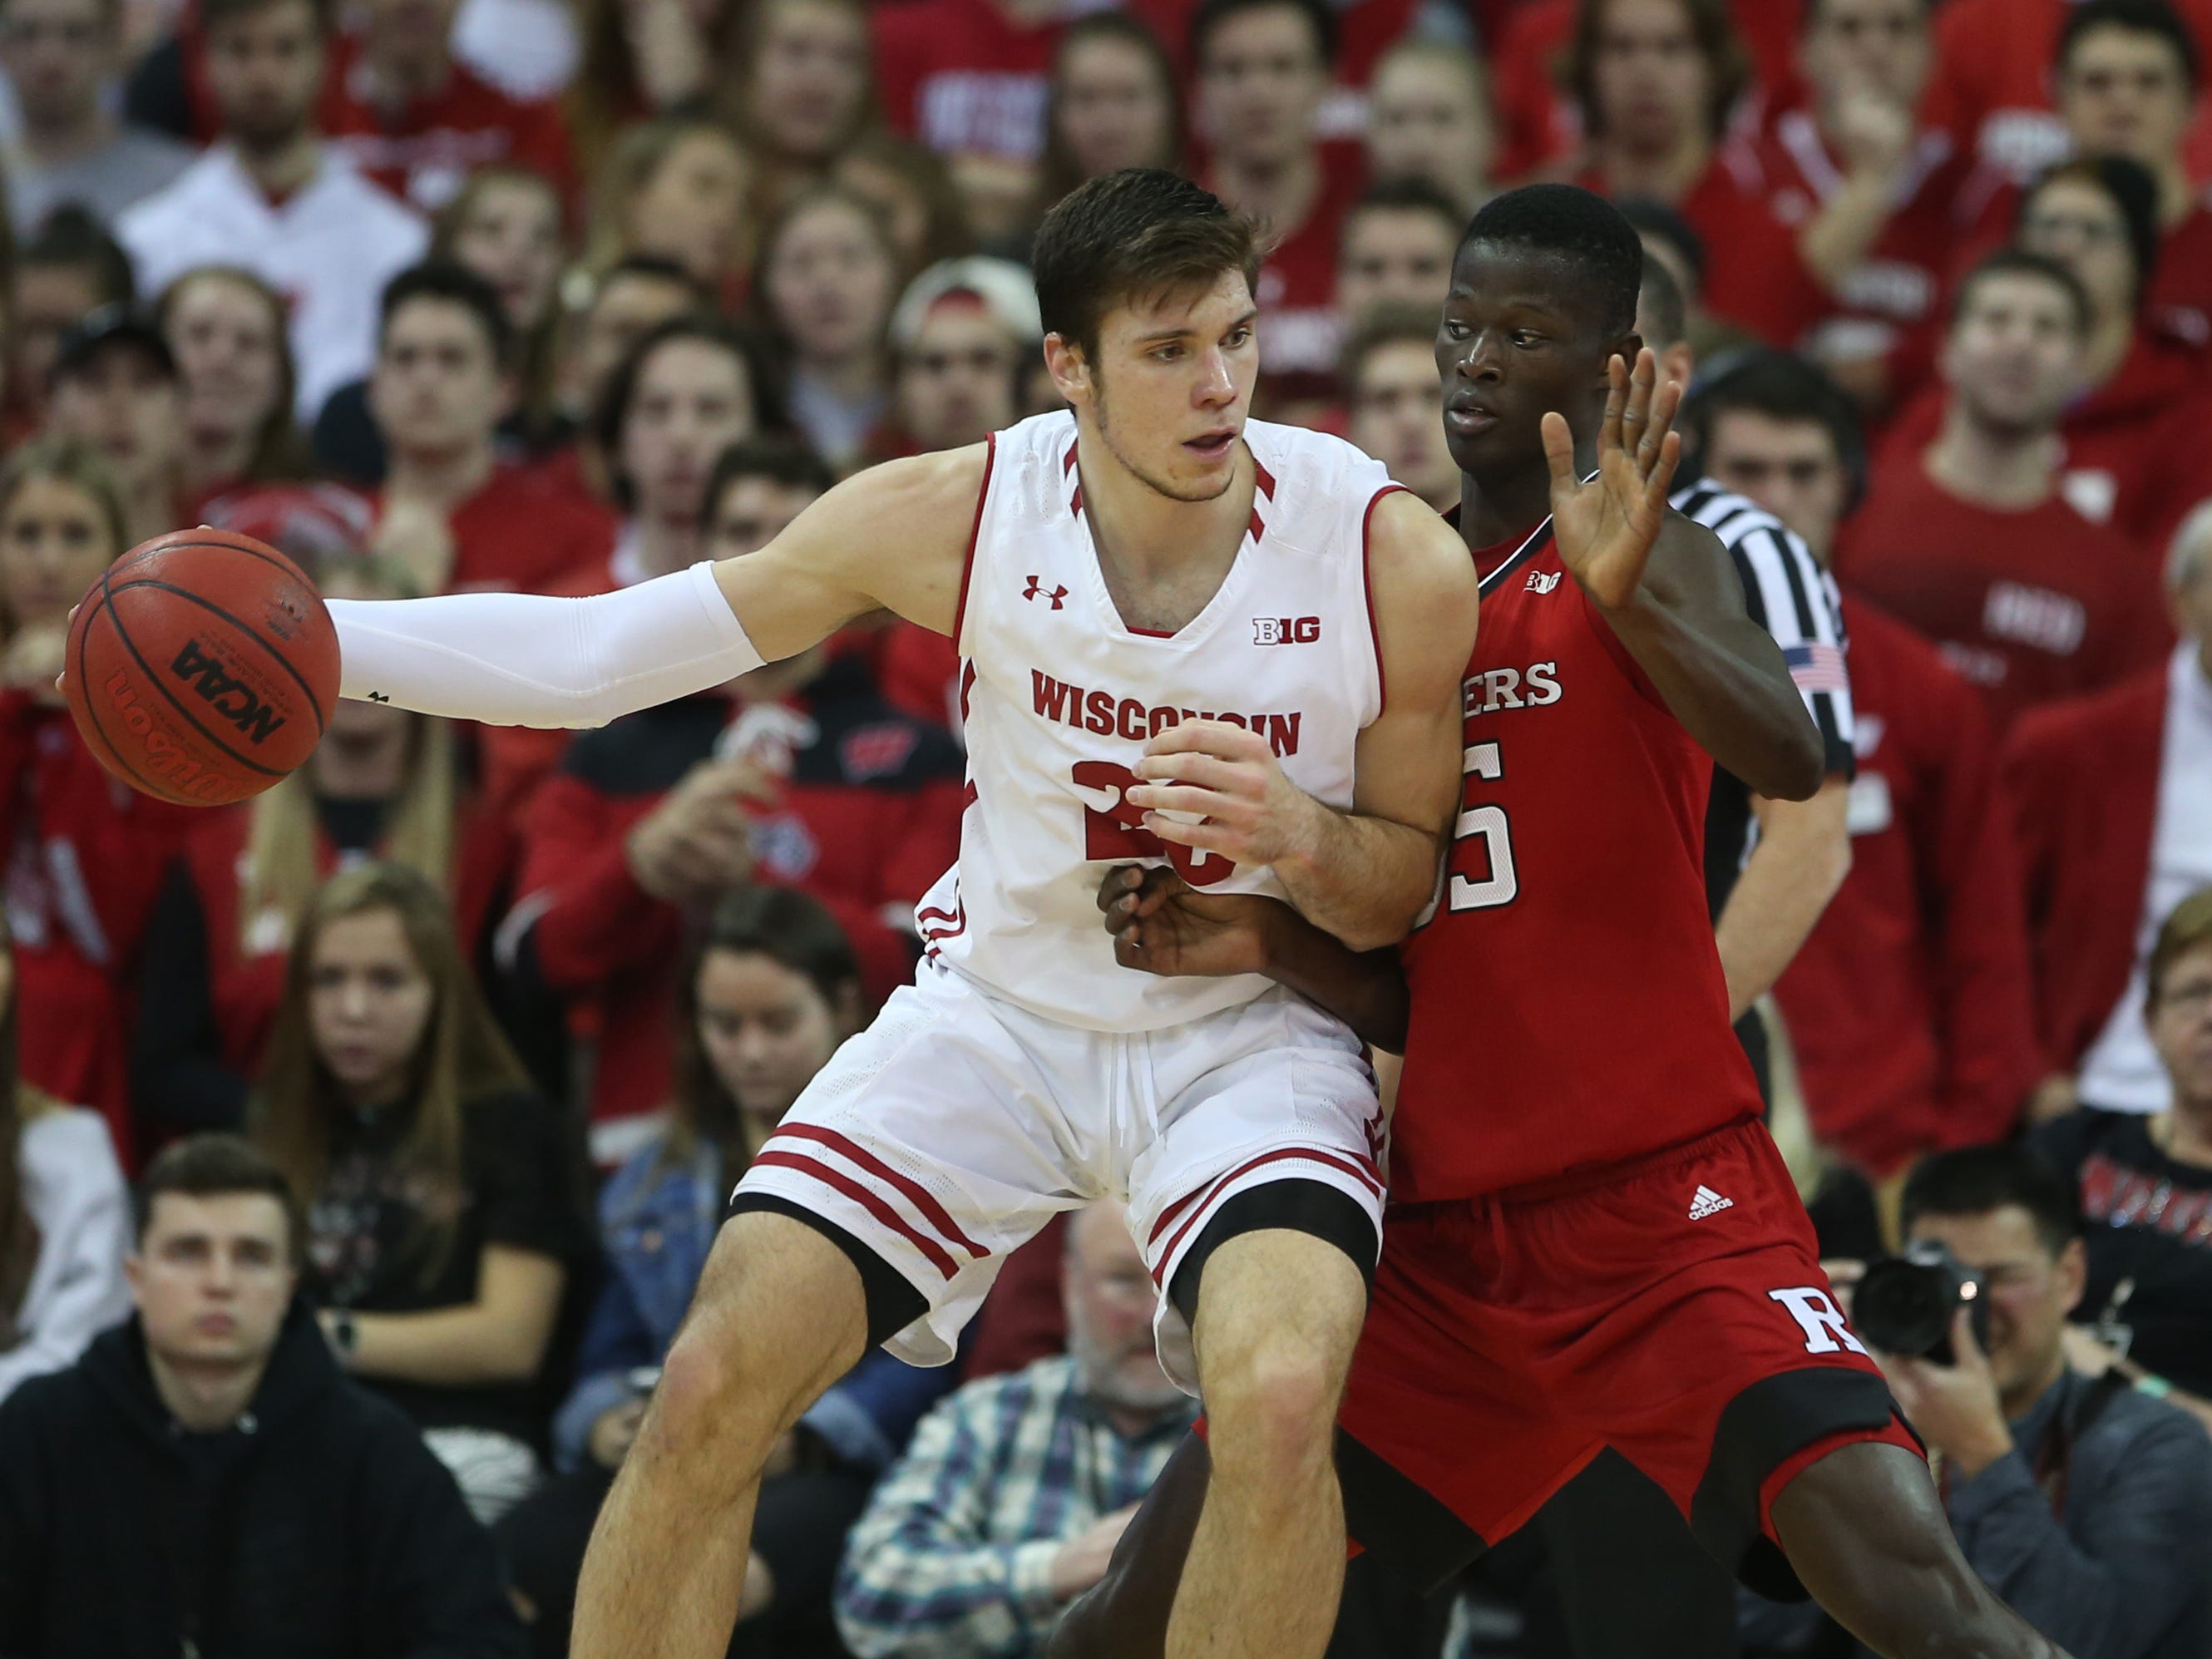 Badgers forward Ethan Happ tries to back down Issa Thiam of Rutgers in the post in first half Monday night.